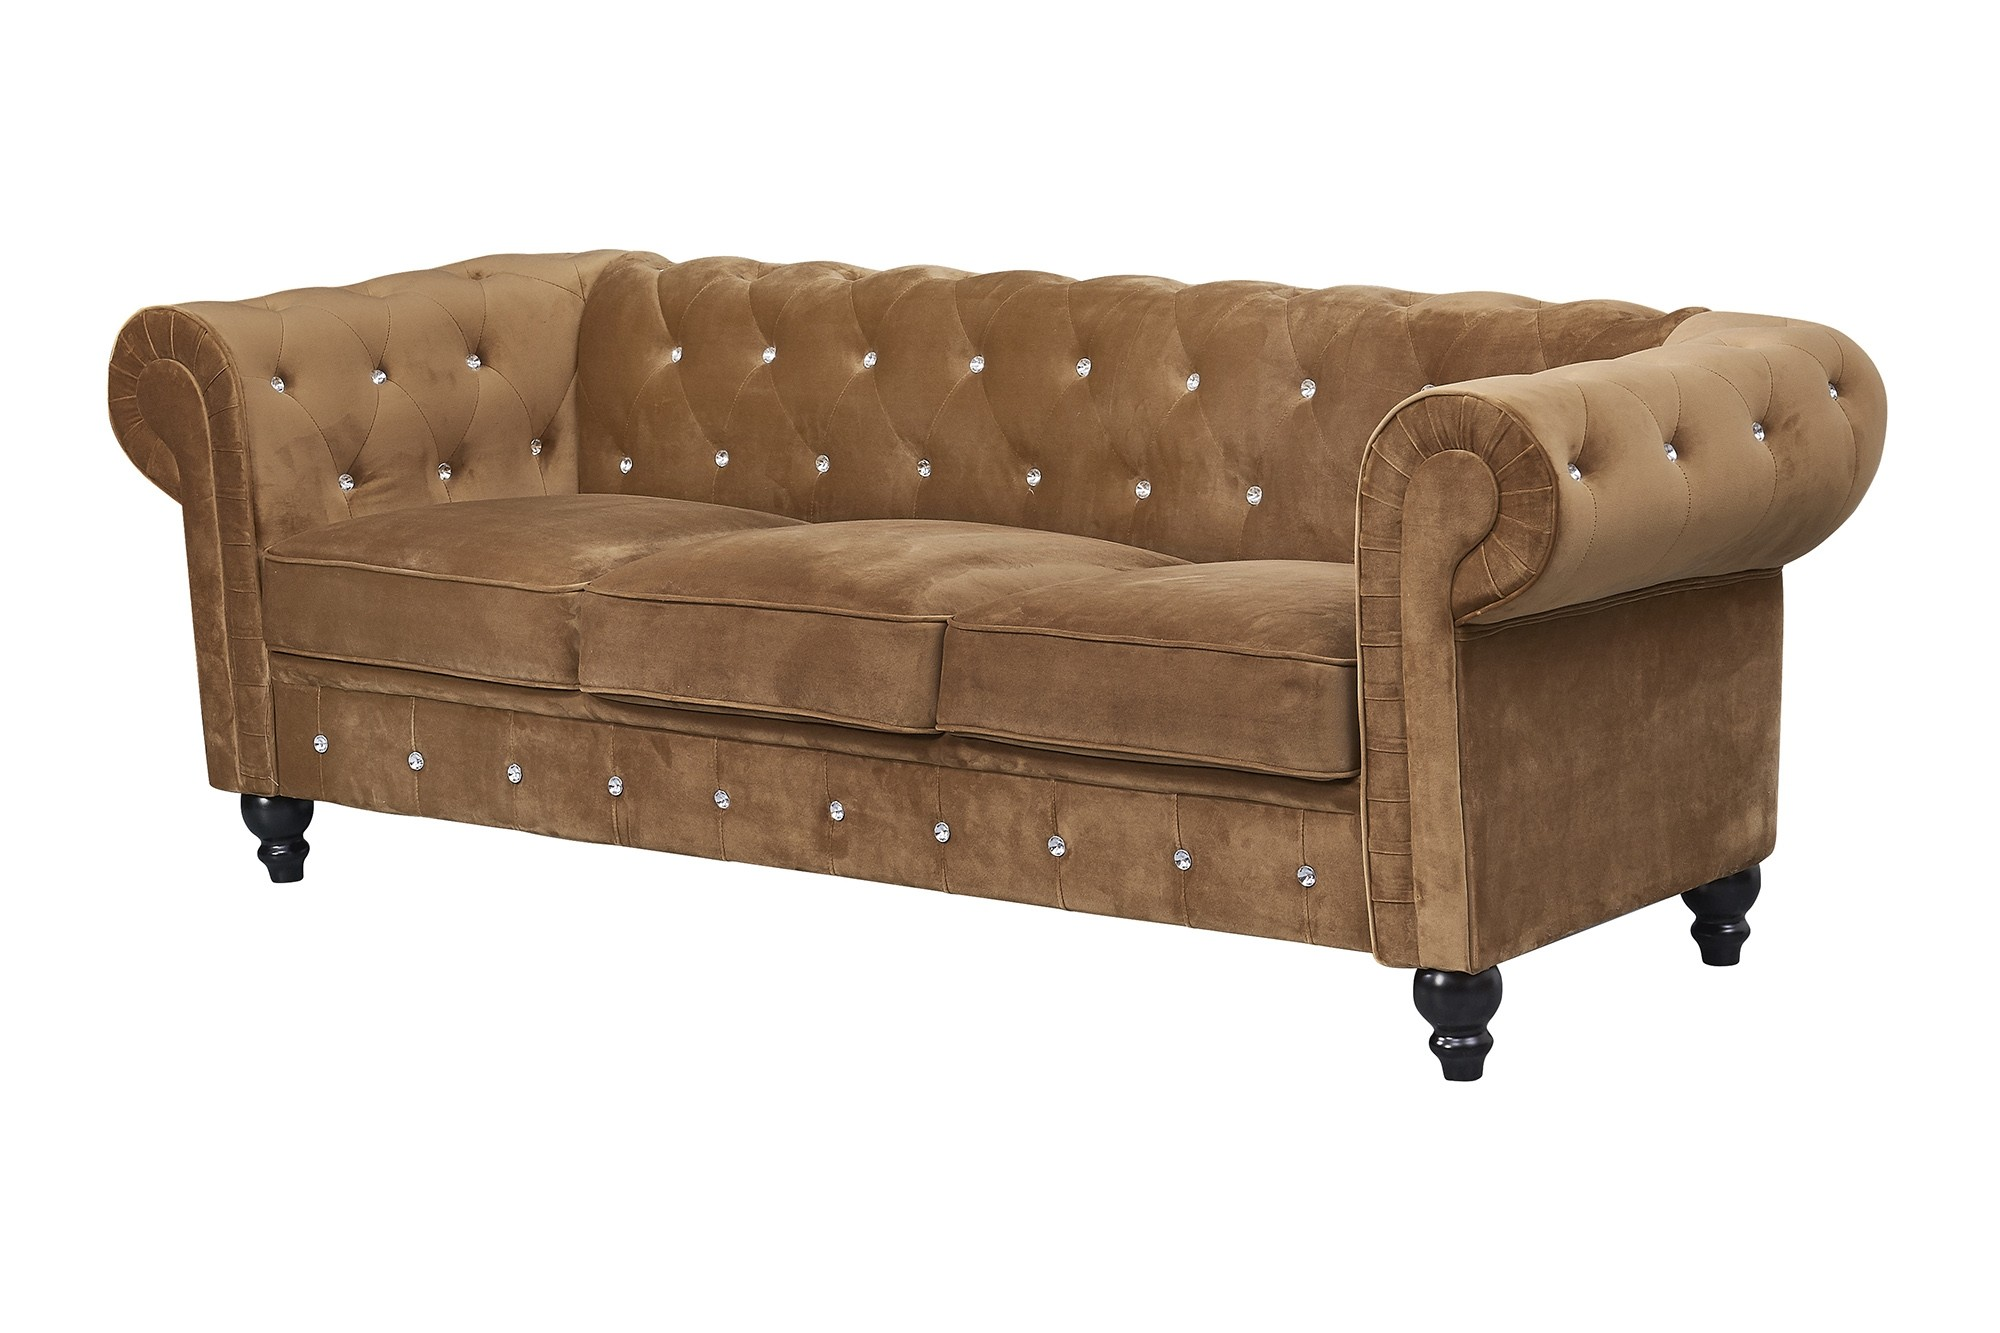 Allegra 3 Seater Chesterfield Sofa